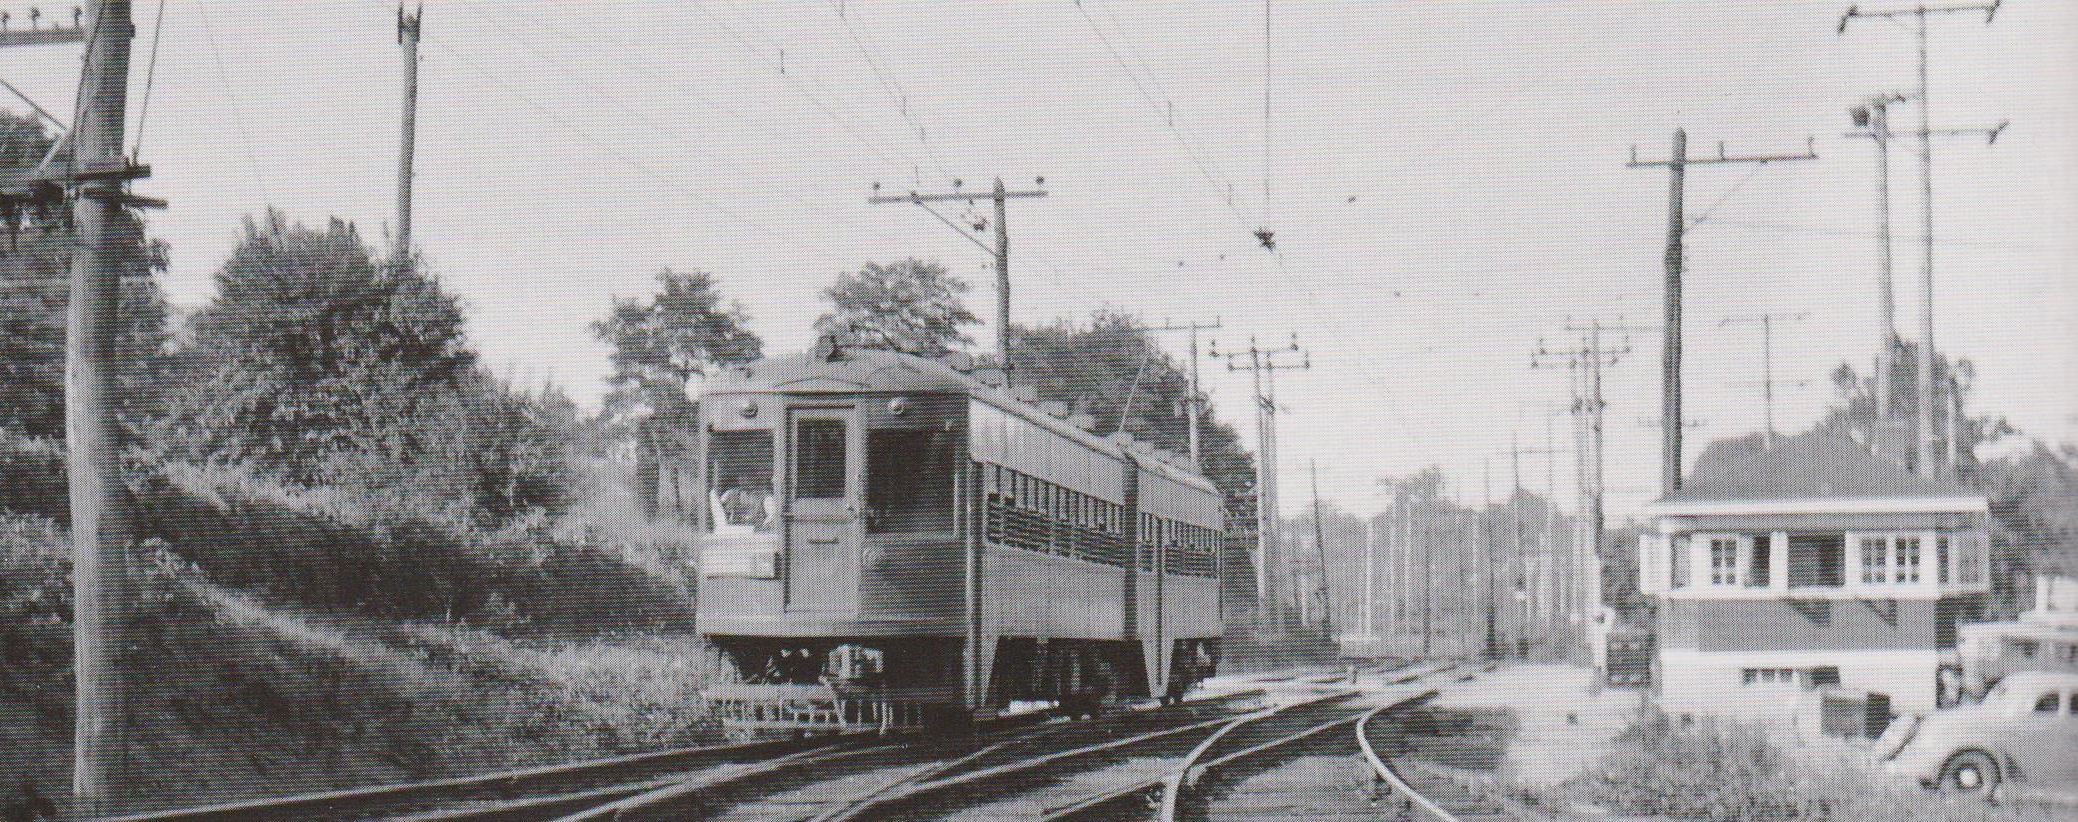 Baltimore & Annapolis Railroad car passing Linthicum Station. Linthicum, Maryland Date: Unknown. Source:  Baltimore Light Rail, Then & Now .